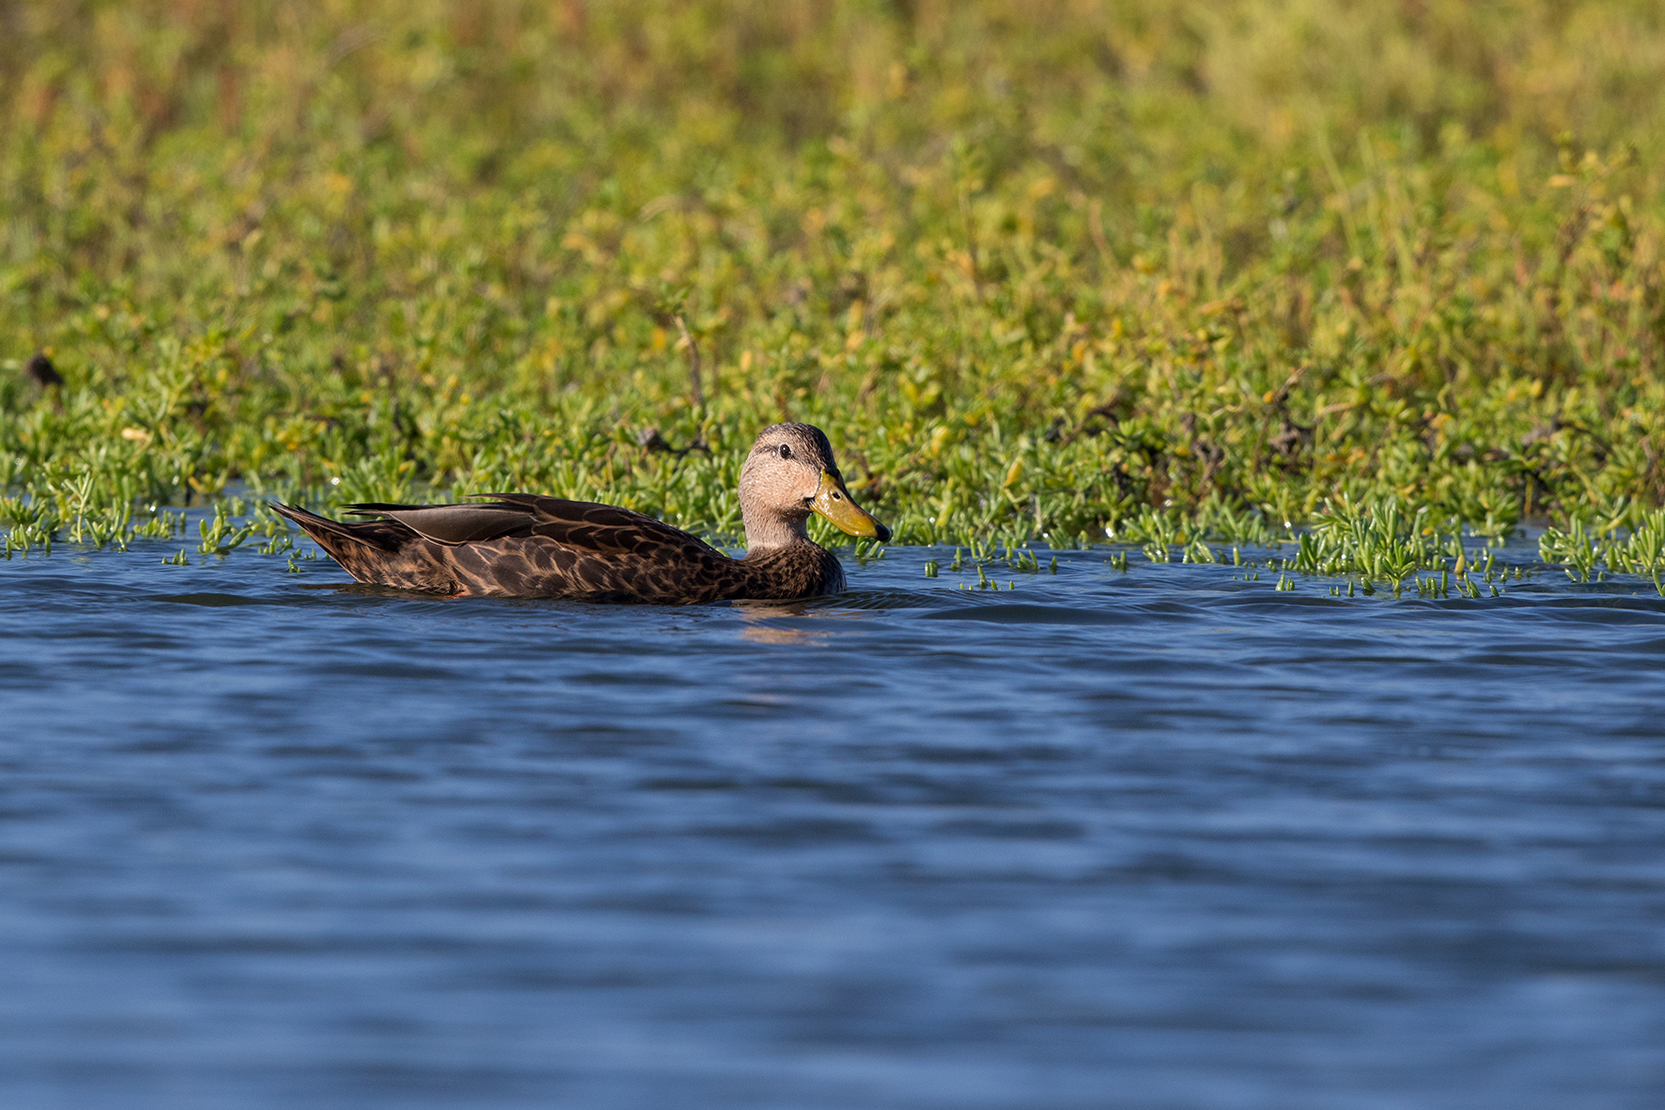 MOTTLED DUCK - ARANSAS COUNTY TX OCT. 2016